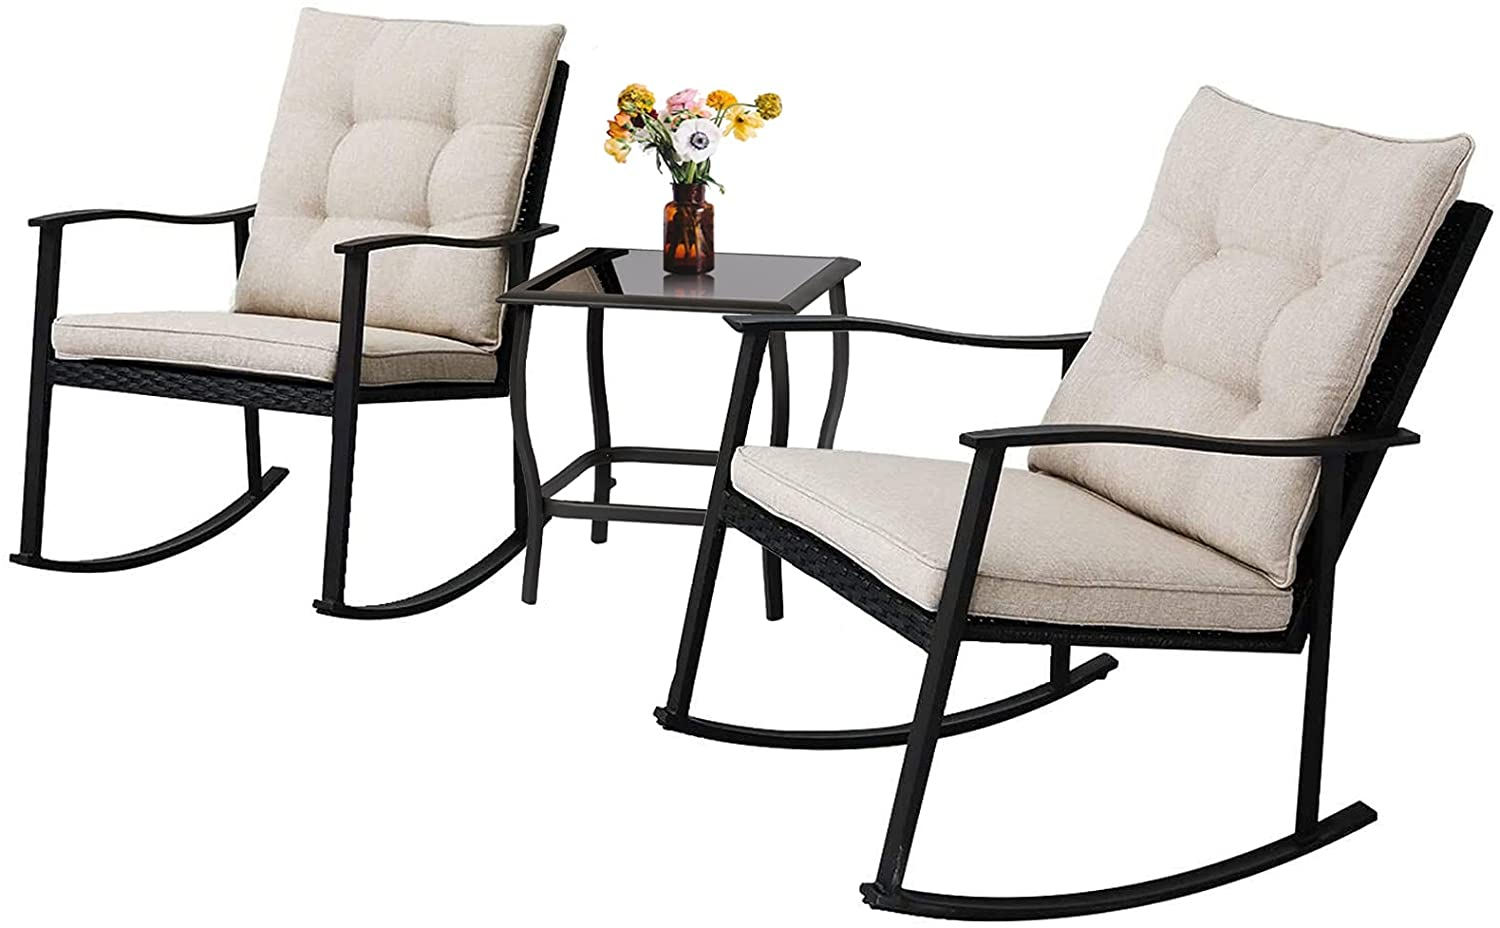 solaura outdoor furniture 3 piece rocking wicker patio bistro set black wicker with beige cushion two rocking chairs with glass coffee table